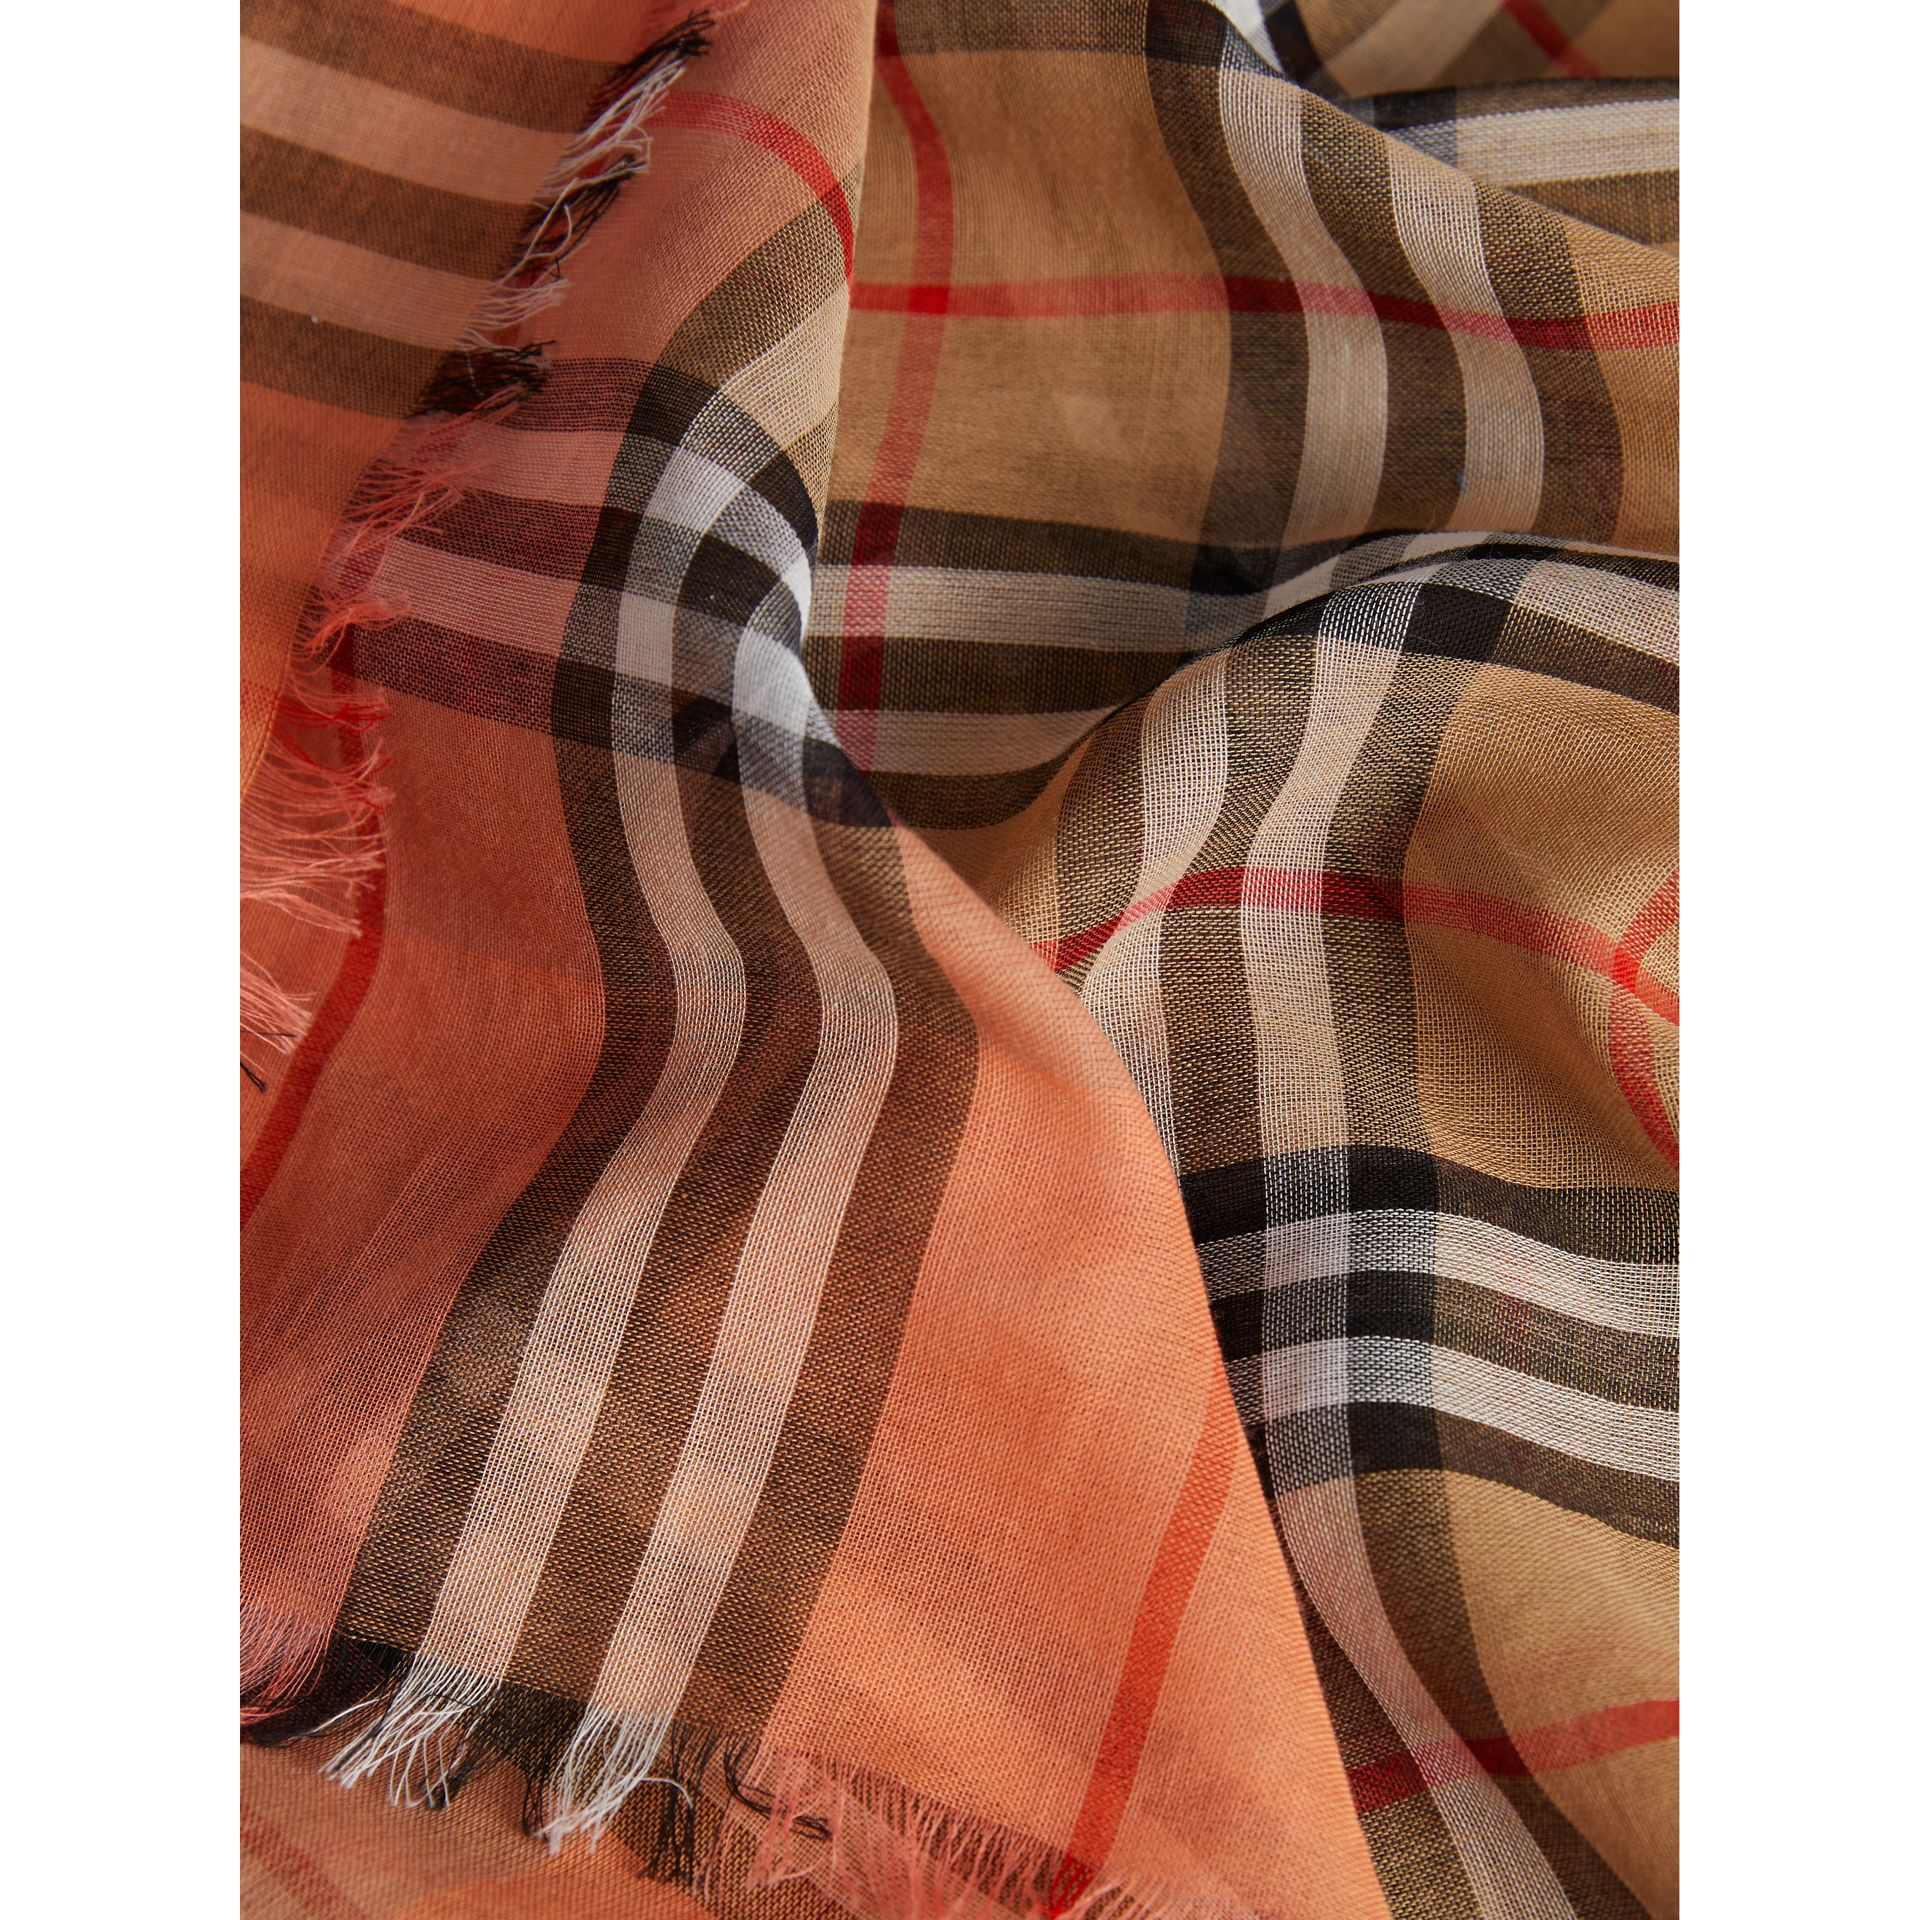 Two-tone Vintage Check Cotton Square Scarf in Coral Rose | Burberry United Kingdom - gallery image 1